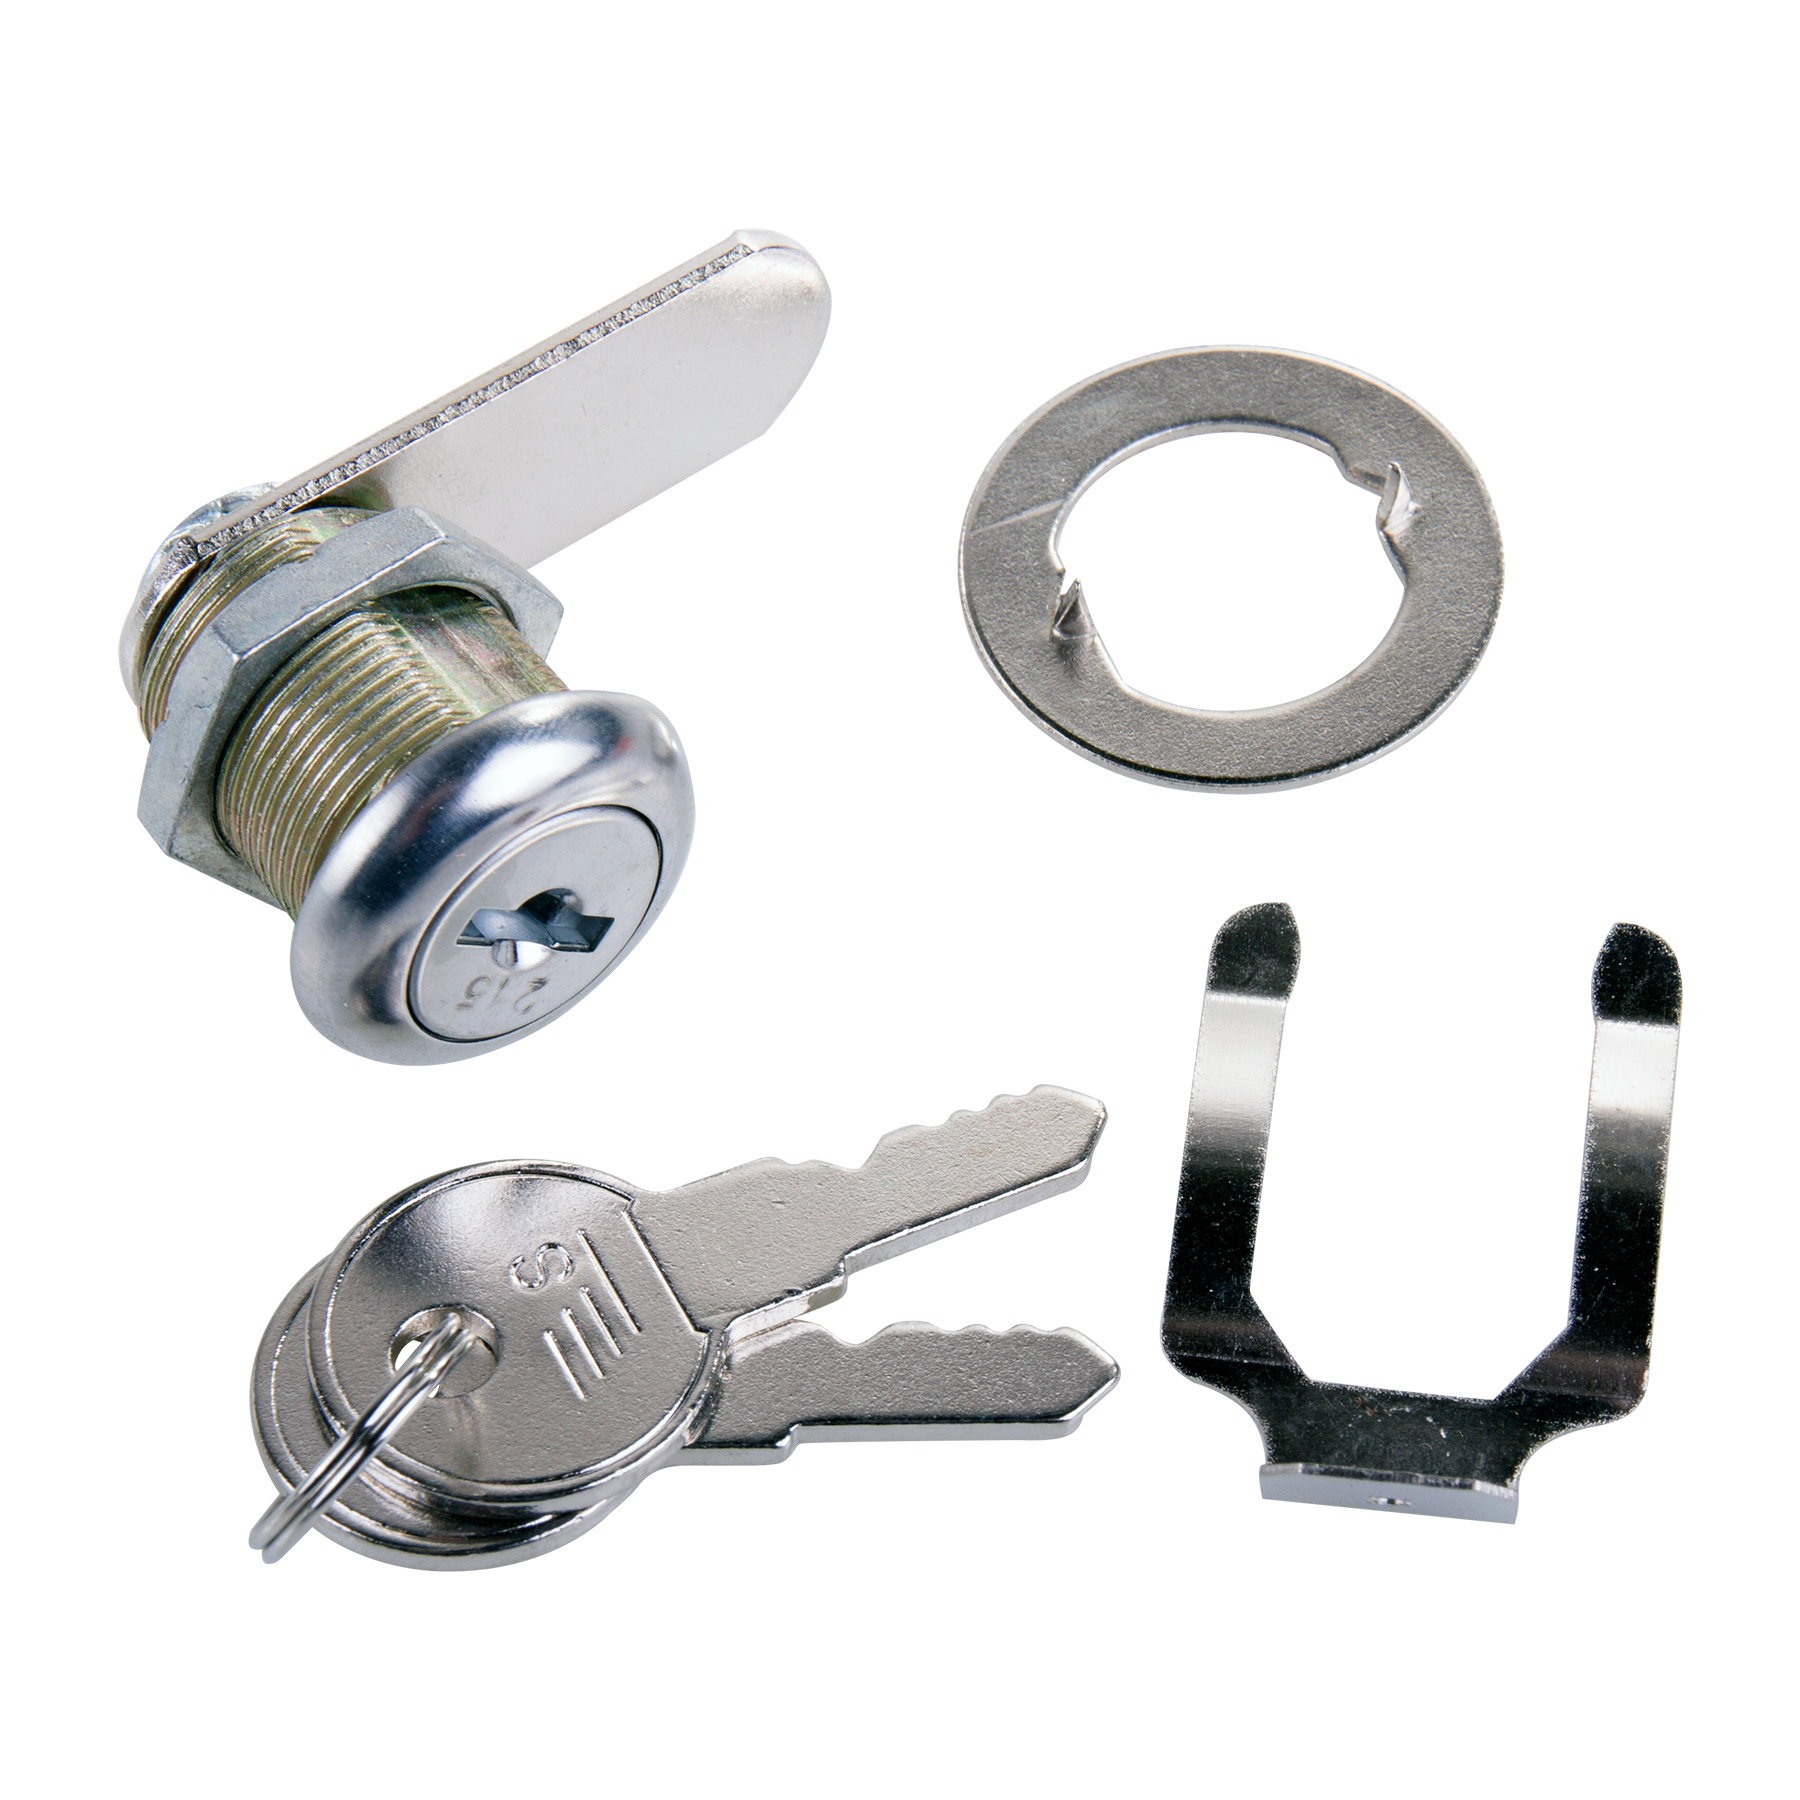 Sterling security cam lock locks with keys various sizes